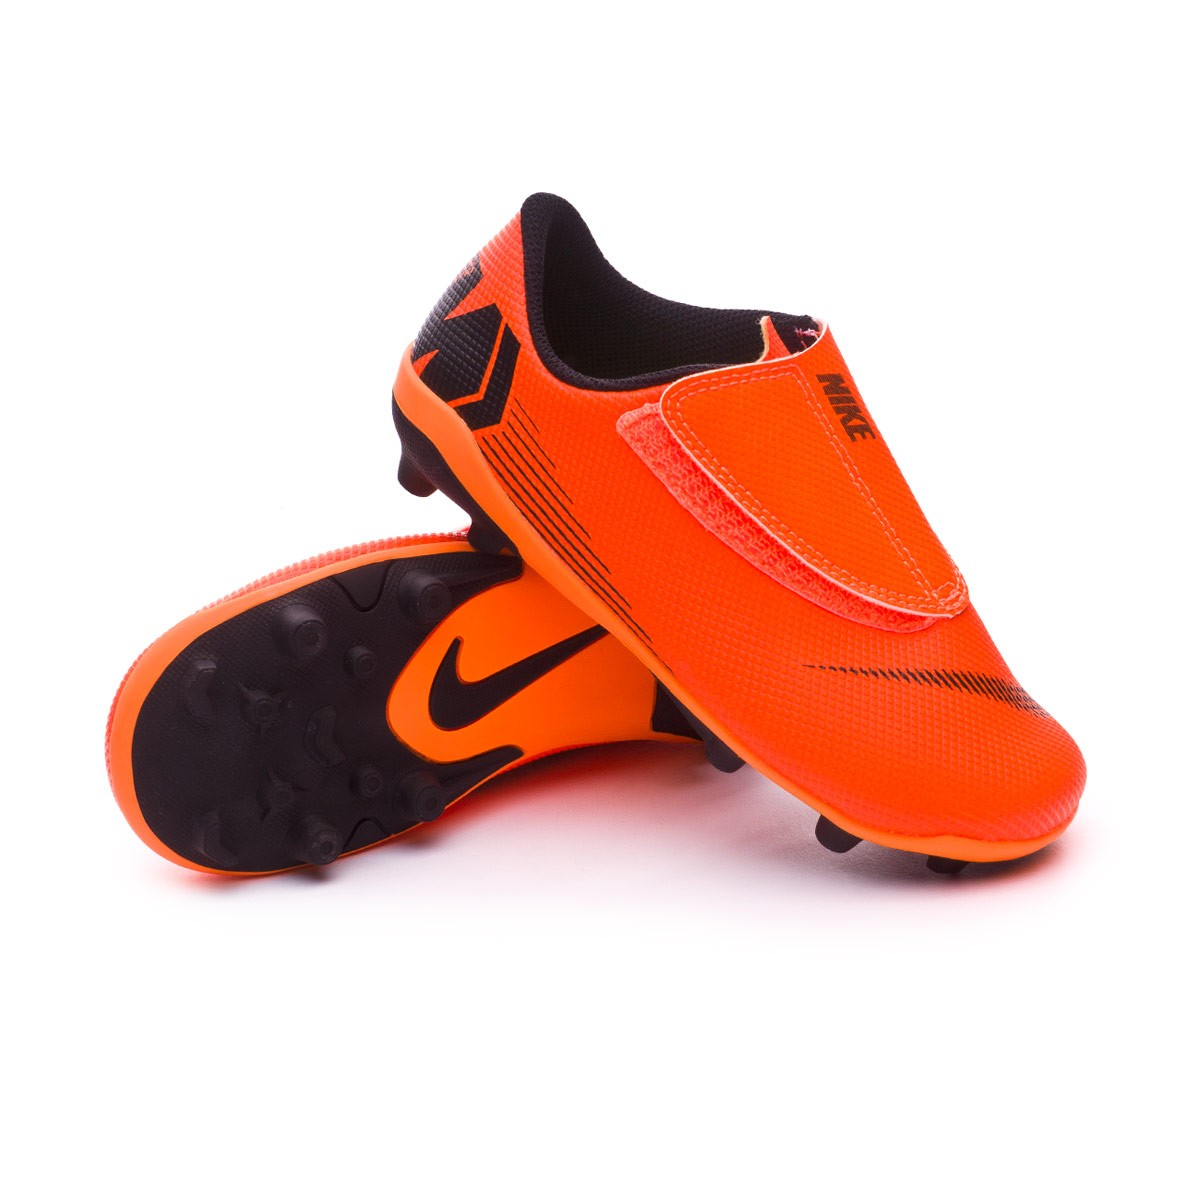 b775283e3 Chaussure de foot Nike Mercurial Vapor XII Club PS Velcro MG Enfant Total  orange-Black-Volt - Boutique de football Fútbol Emotion